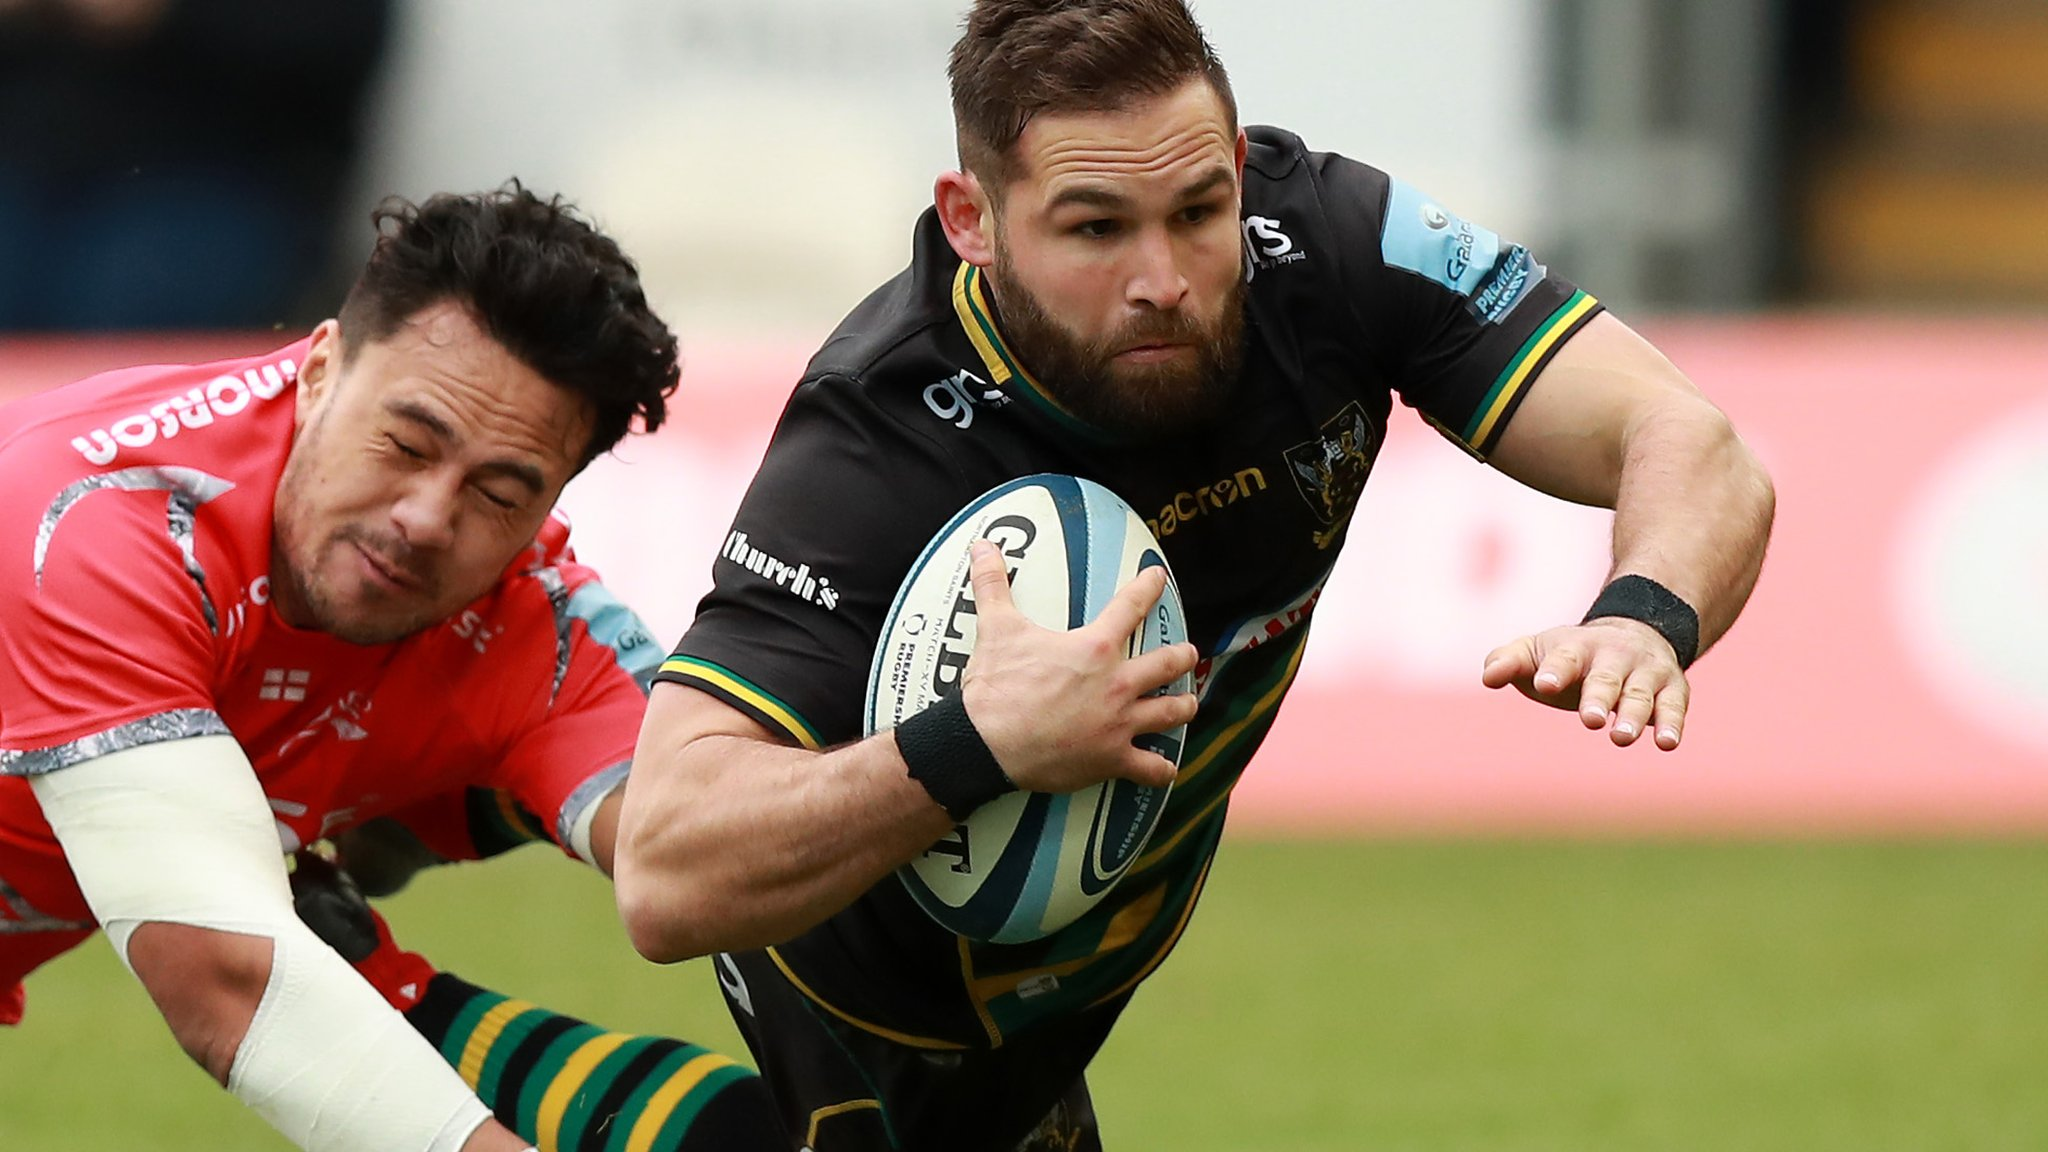 Premiership: Northampton Saints 67-17 Sale Sharks